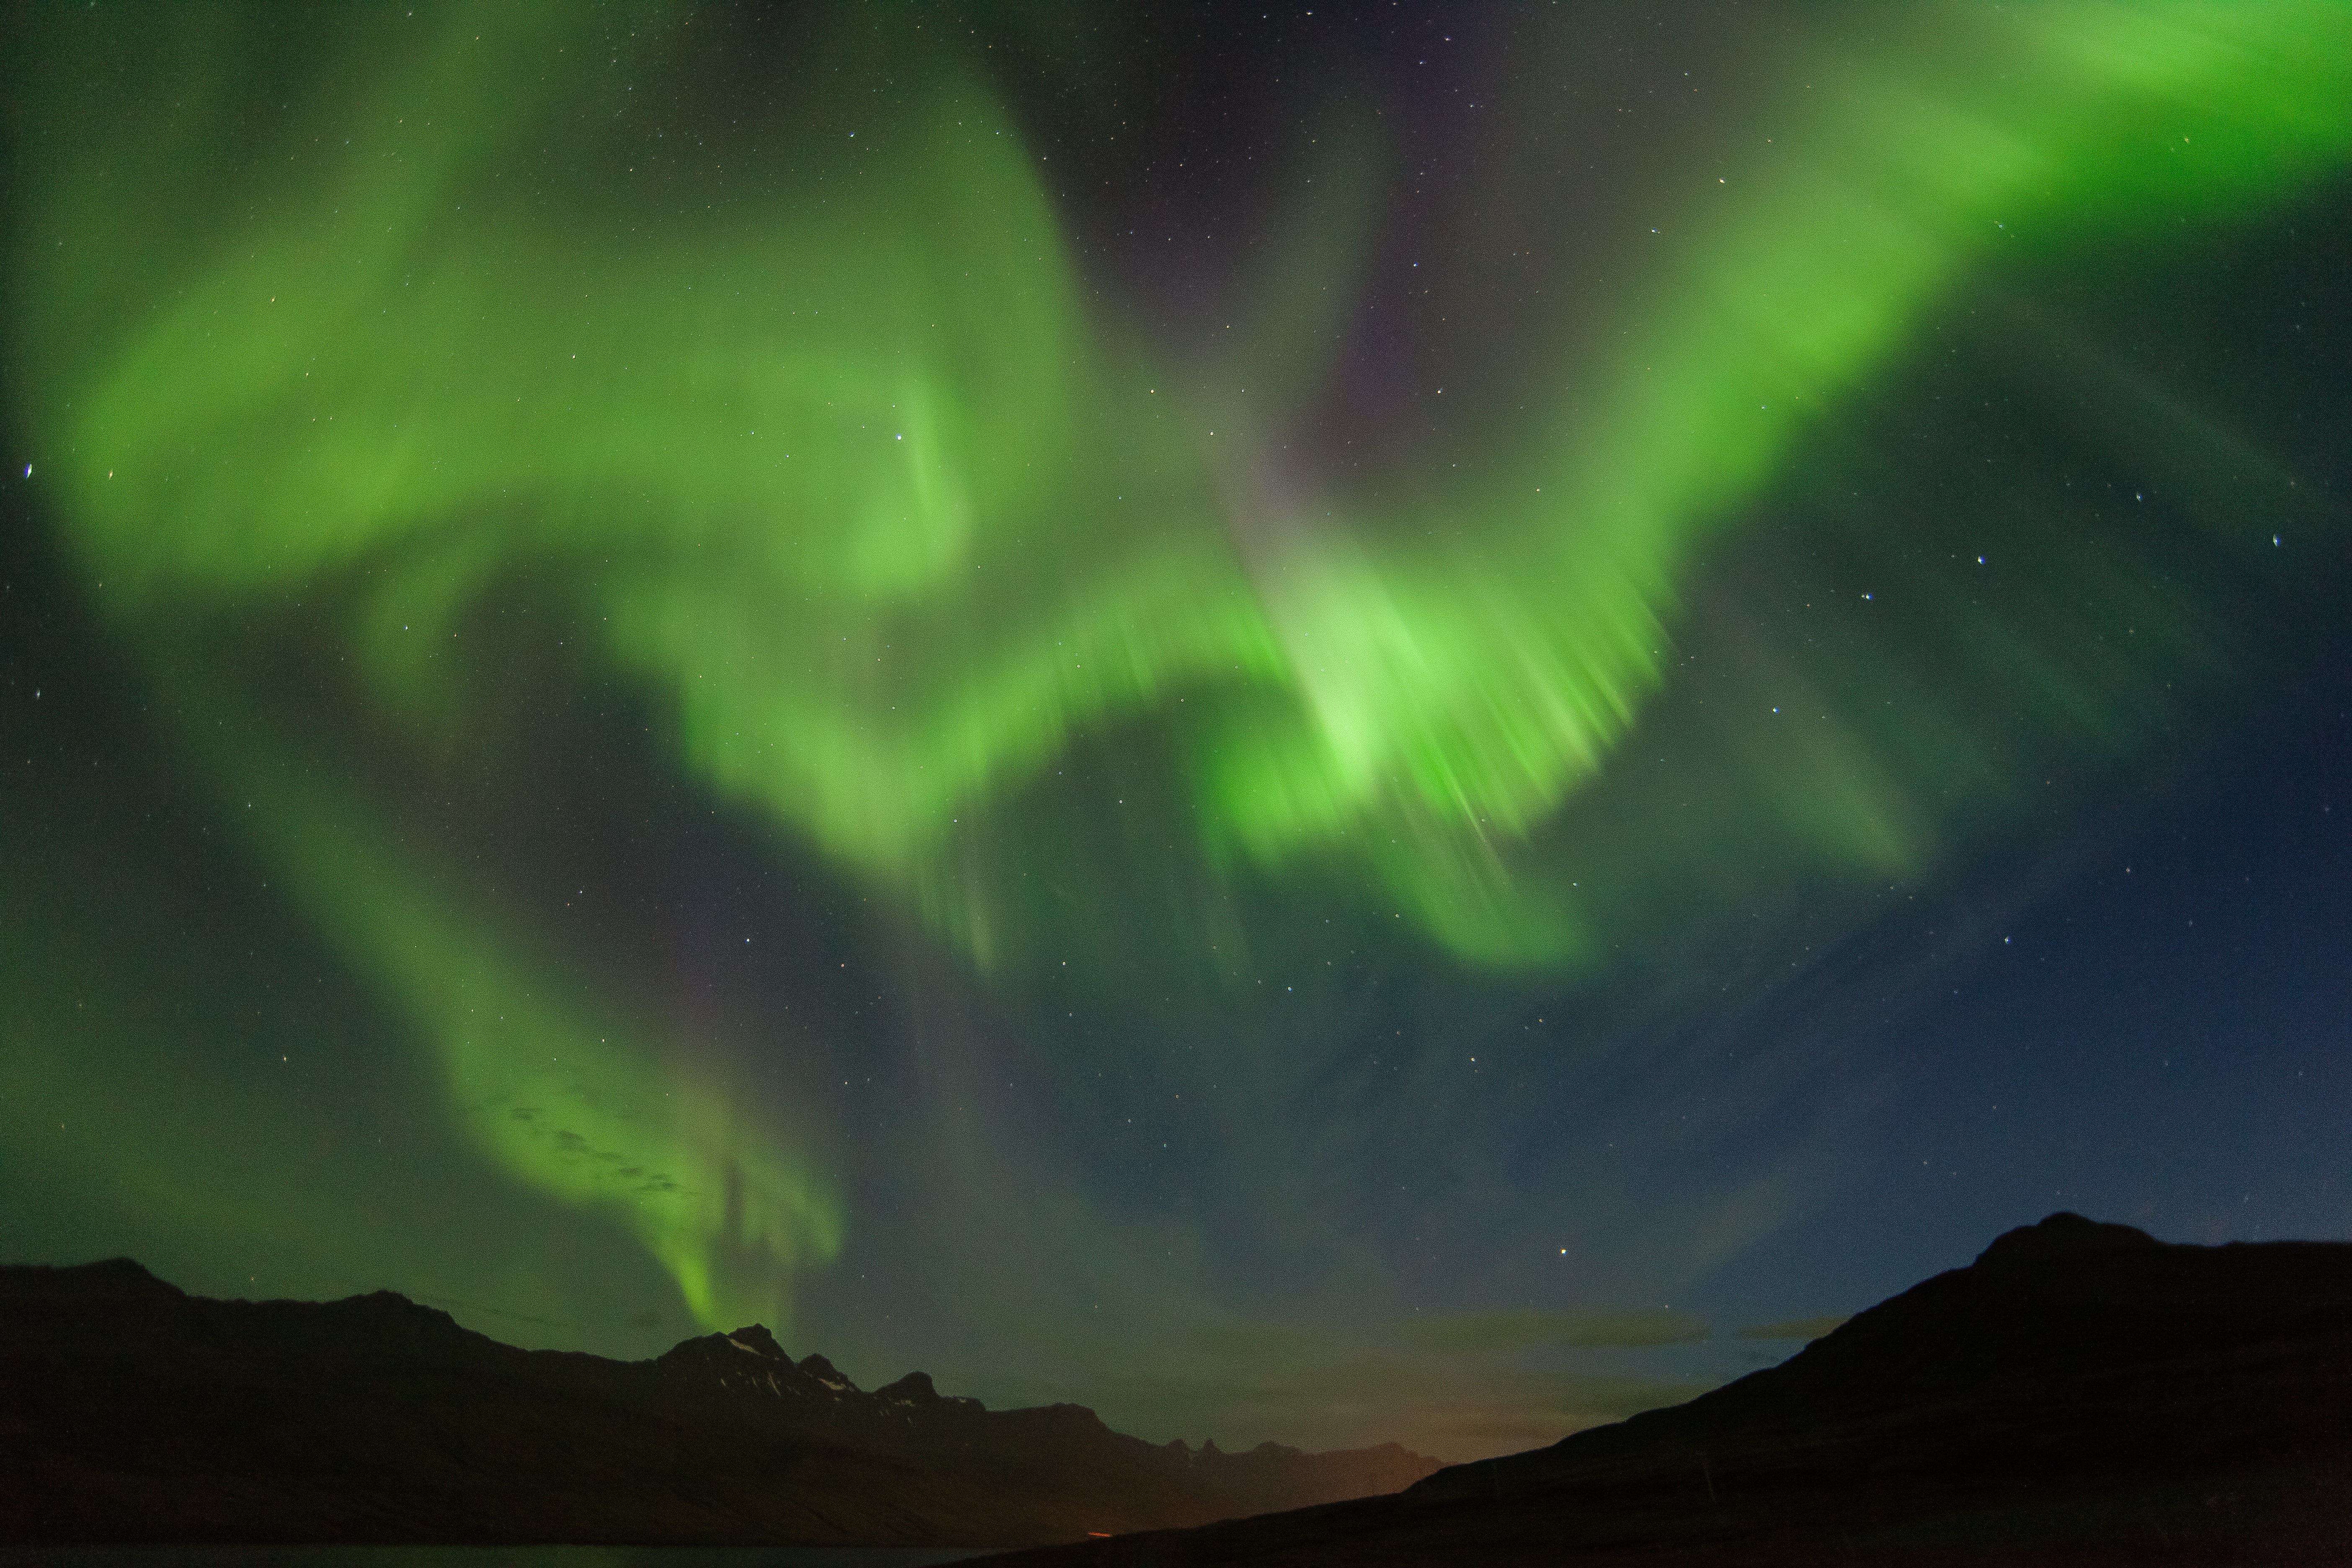 A particularly intense display of the Northern Lights.